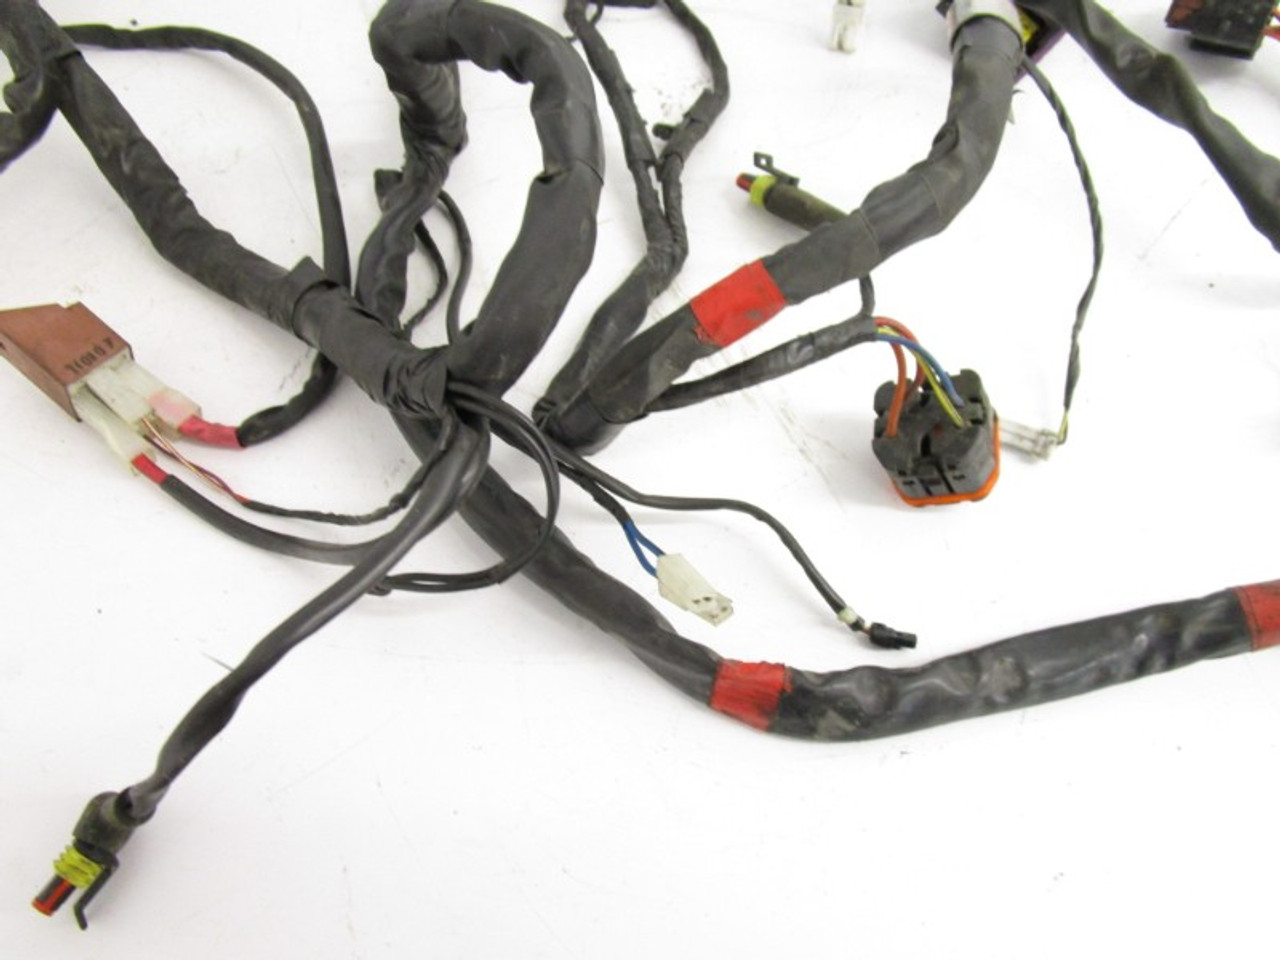 07 piaggio mp3 250 scooter used main wire harness wiring plugs  connectors